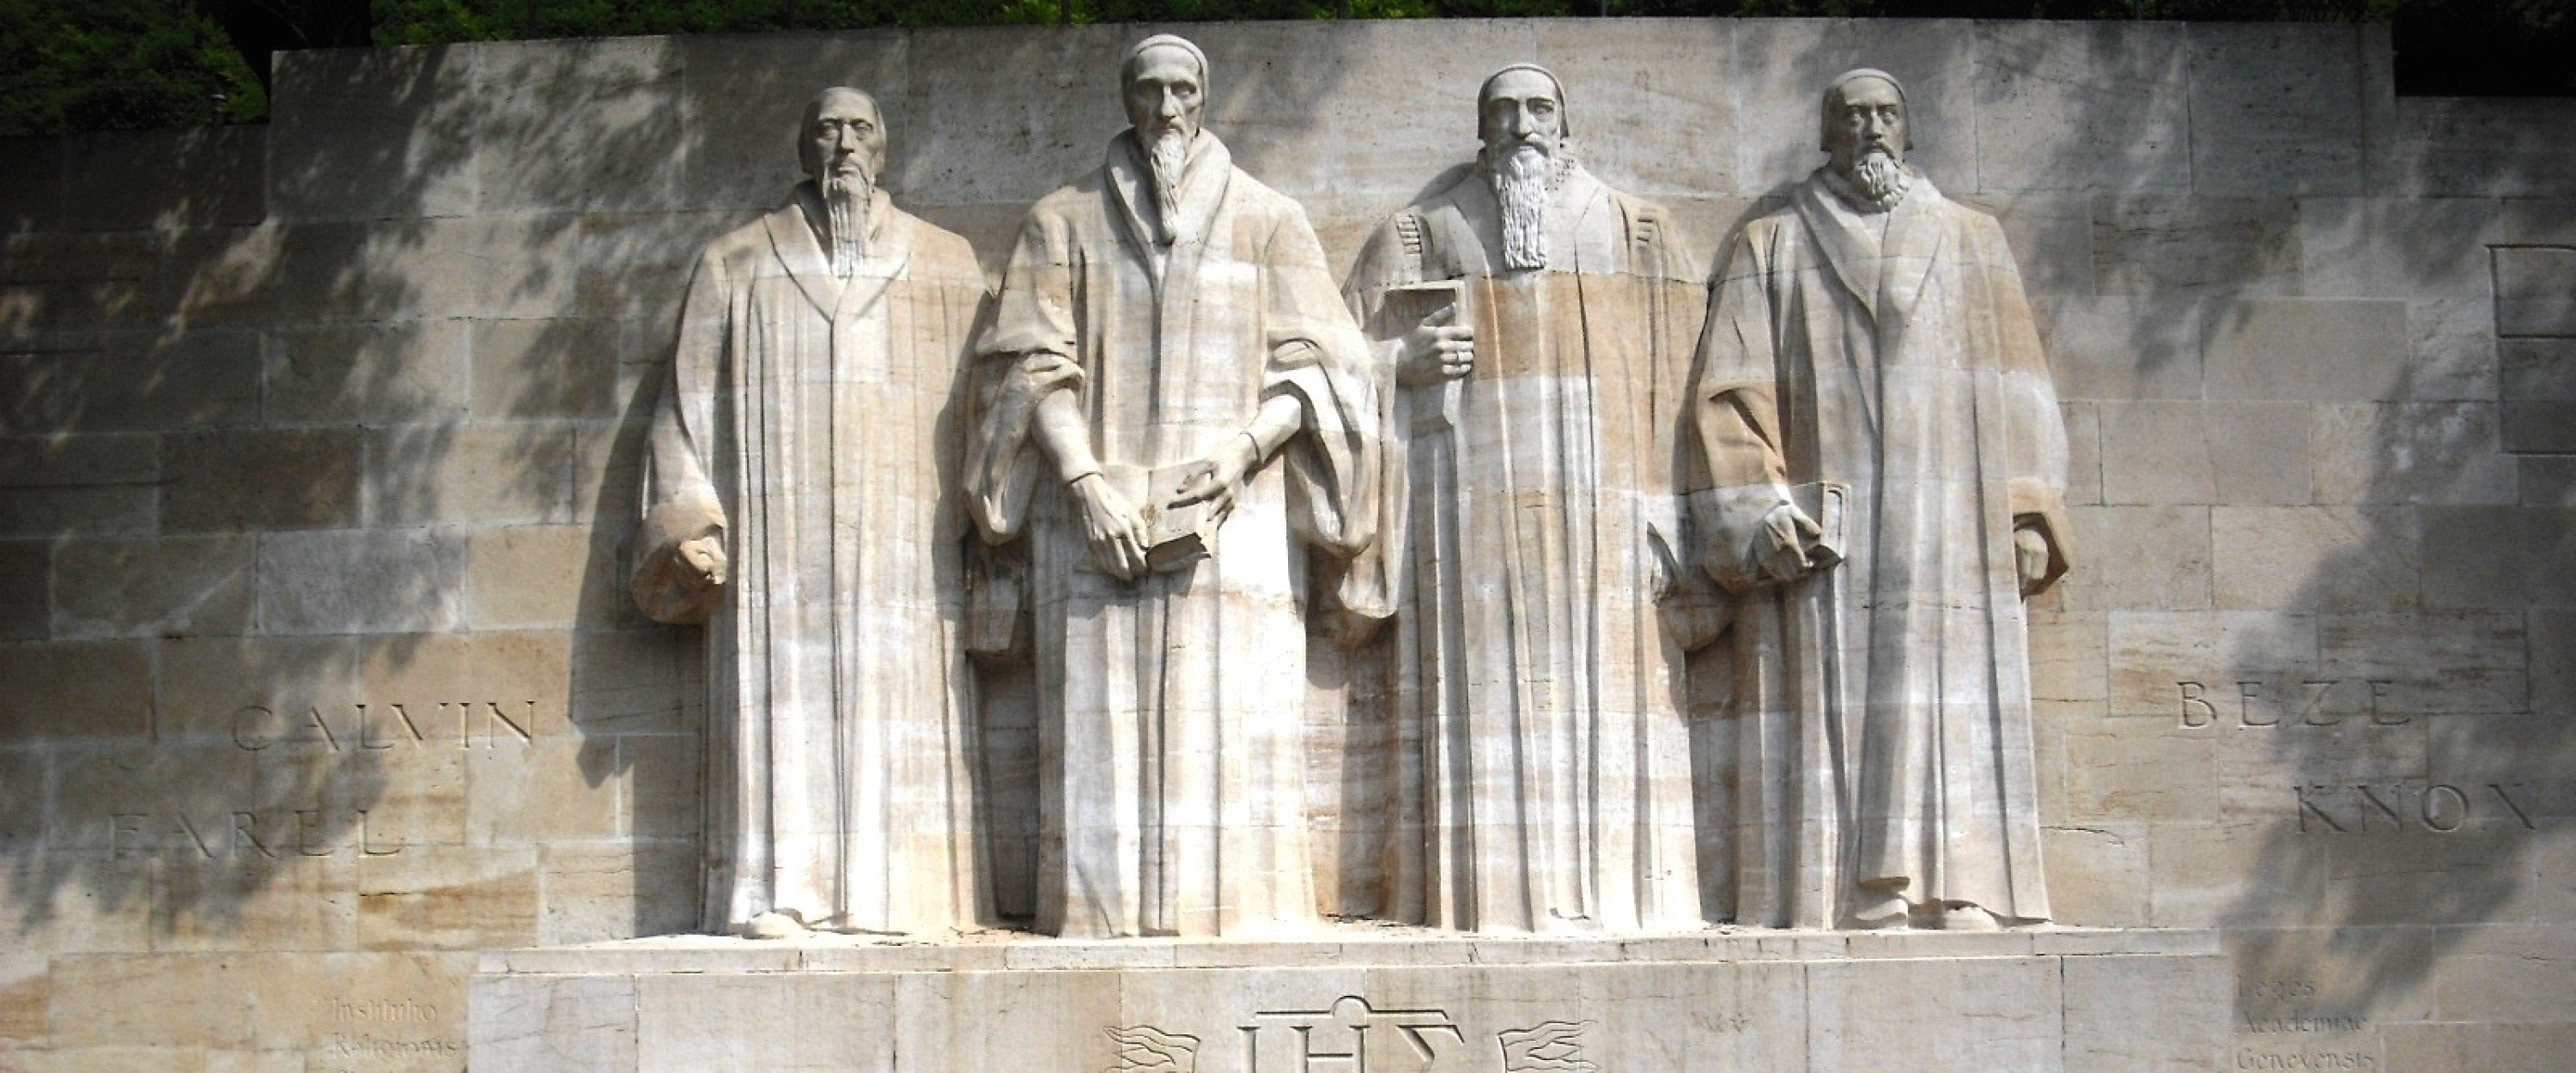 the history of the protestant reformation Chapter 8: sacred music in the era of the reformation the reformation began as a theological dispute that was set in motion by martin luther in 1517 and mushroomed.